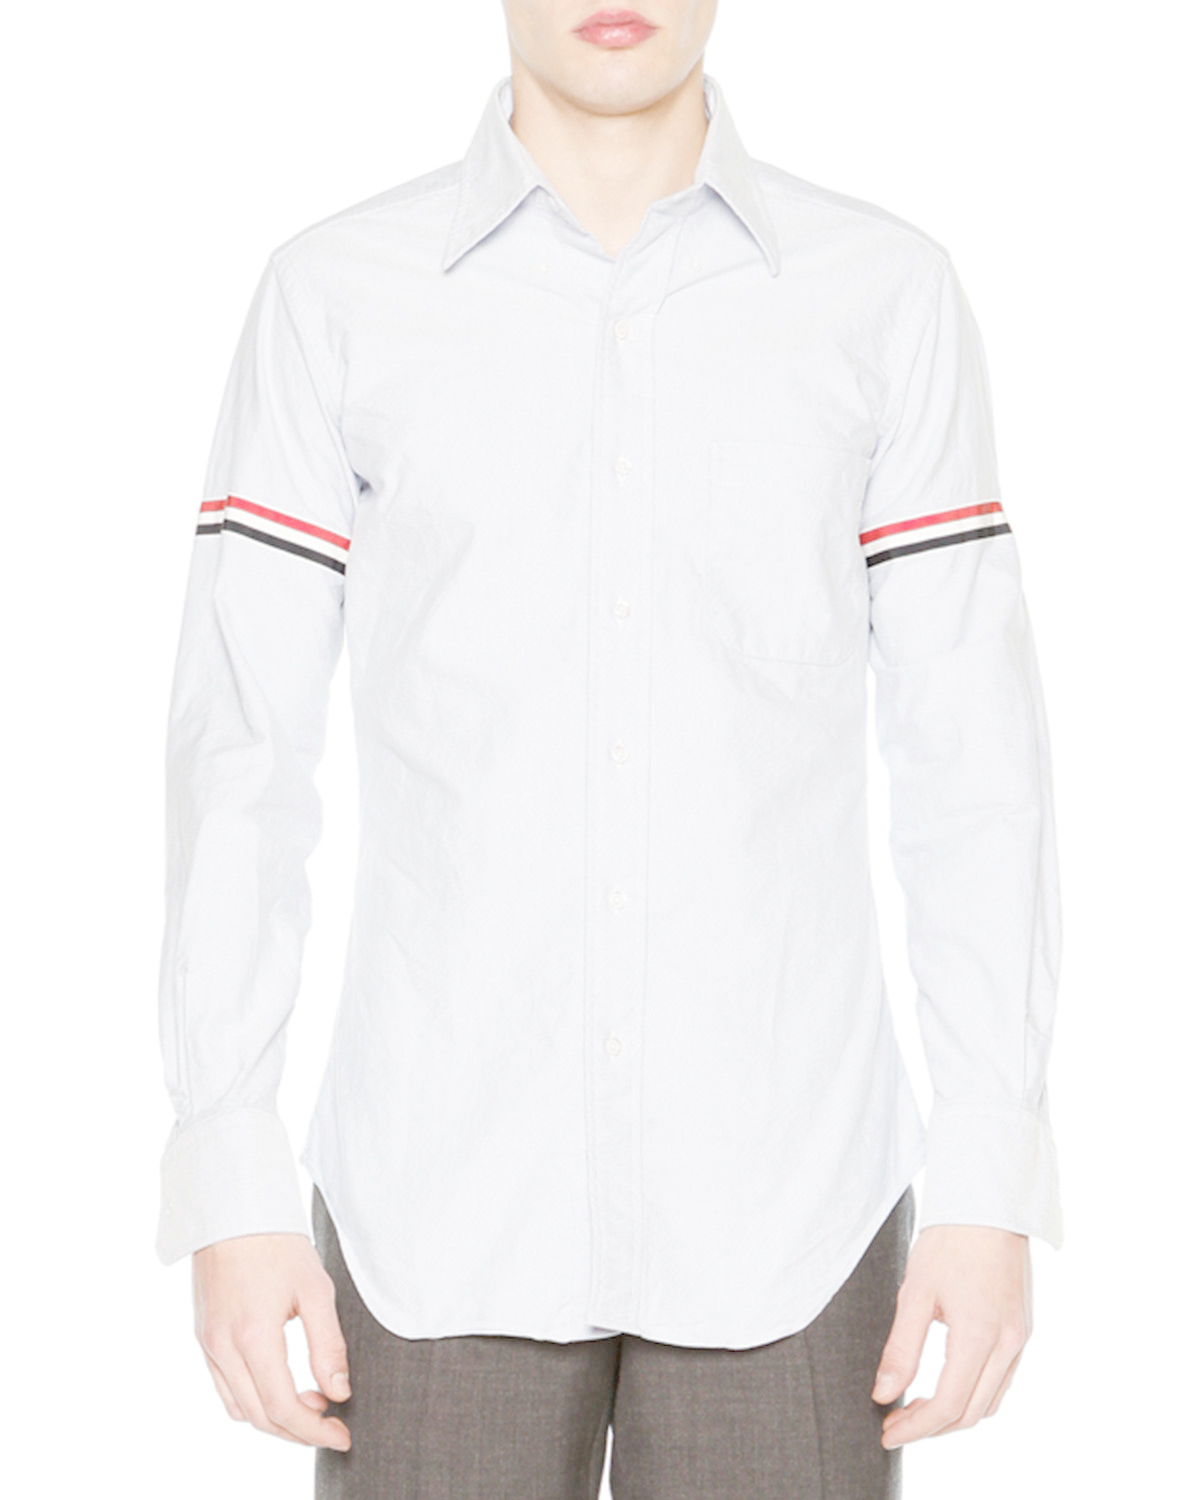 Thom browne classic arm stripe long sleeve oxford shirt in for Thom browne shirt sale